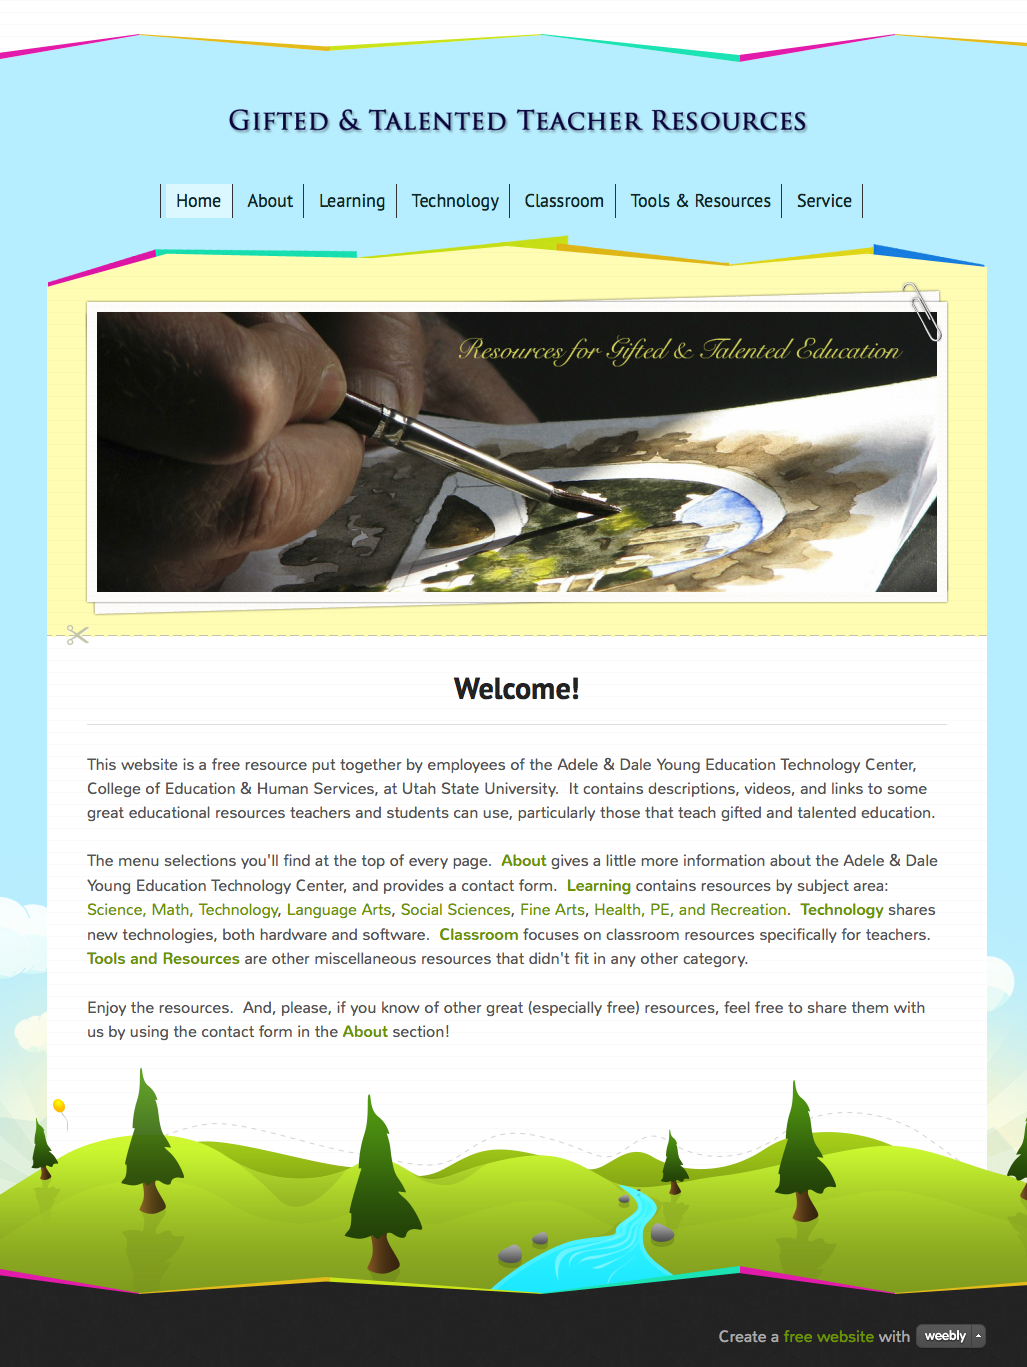 Image - Gifted and Talented Resources website